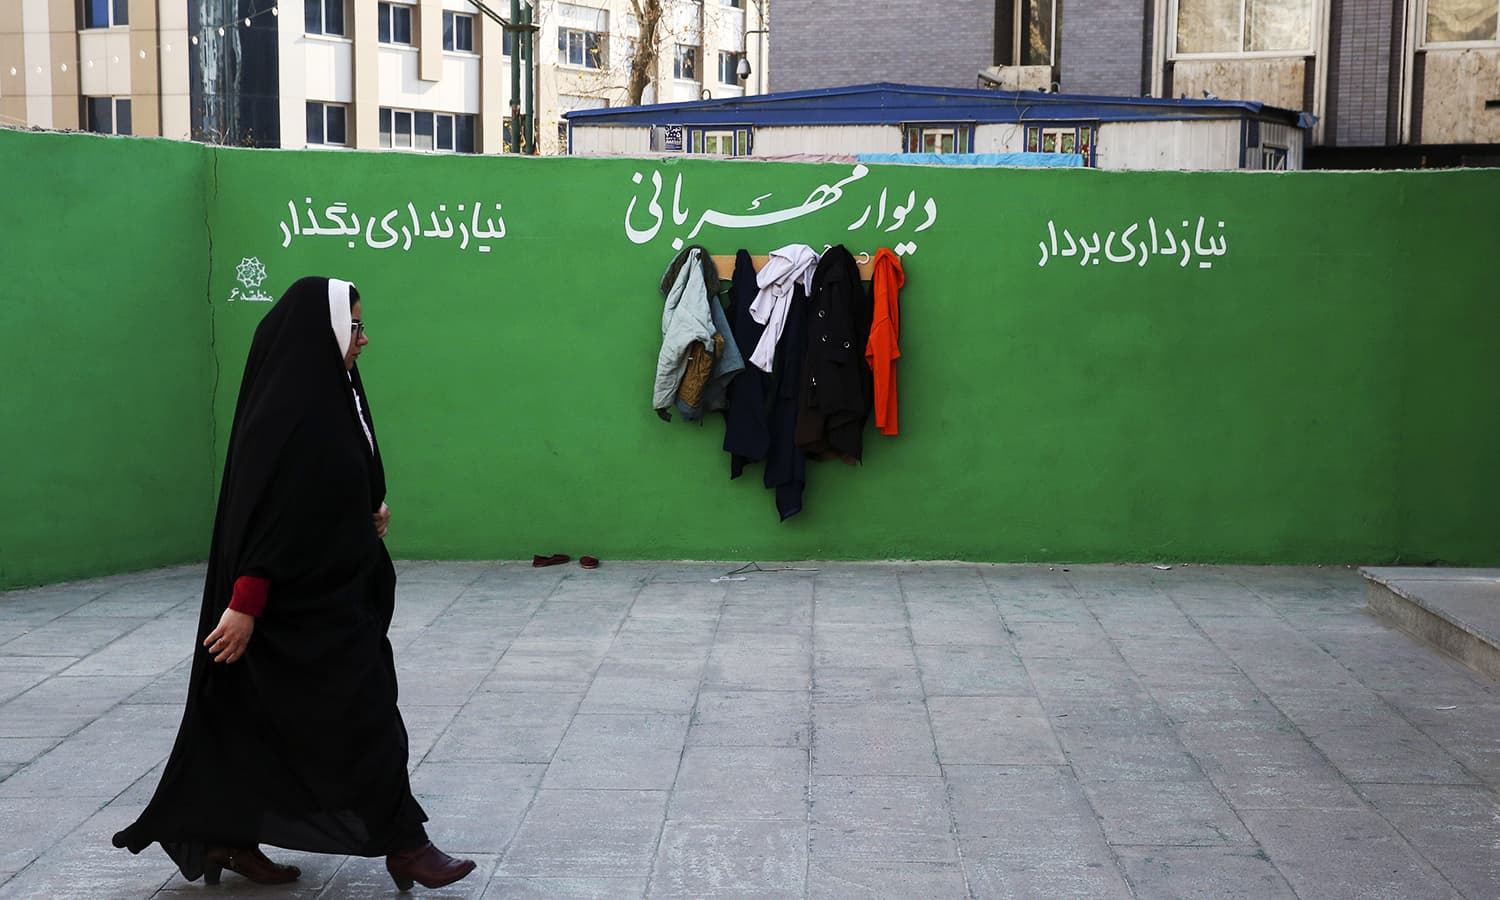 """In this Thursday, Jan. 7, 2016 photo, an Iranian woman walks past clothes hung on hooks at an outdoor charity wall marked, """"Wall of Kindness,"""" next to a subway station entrance in central Tehran, Iran. ─ AP"""